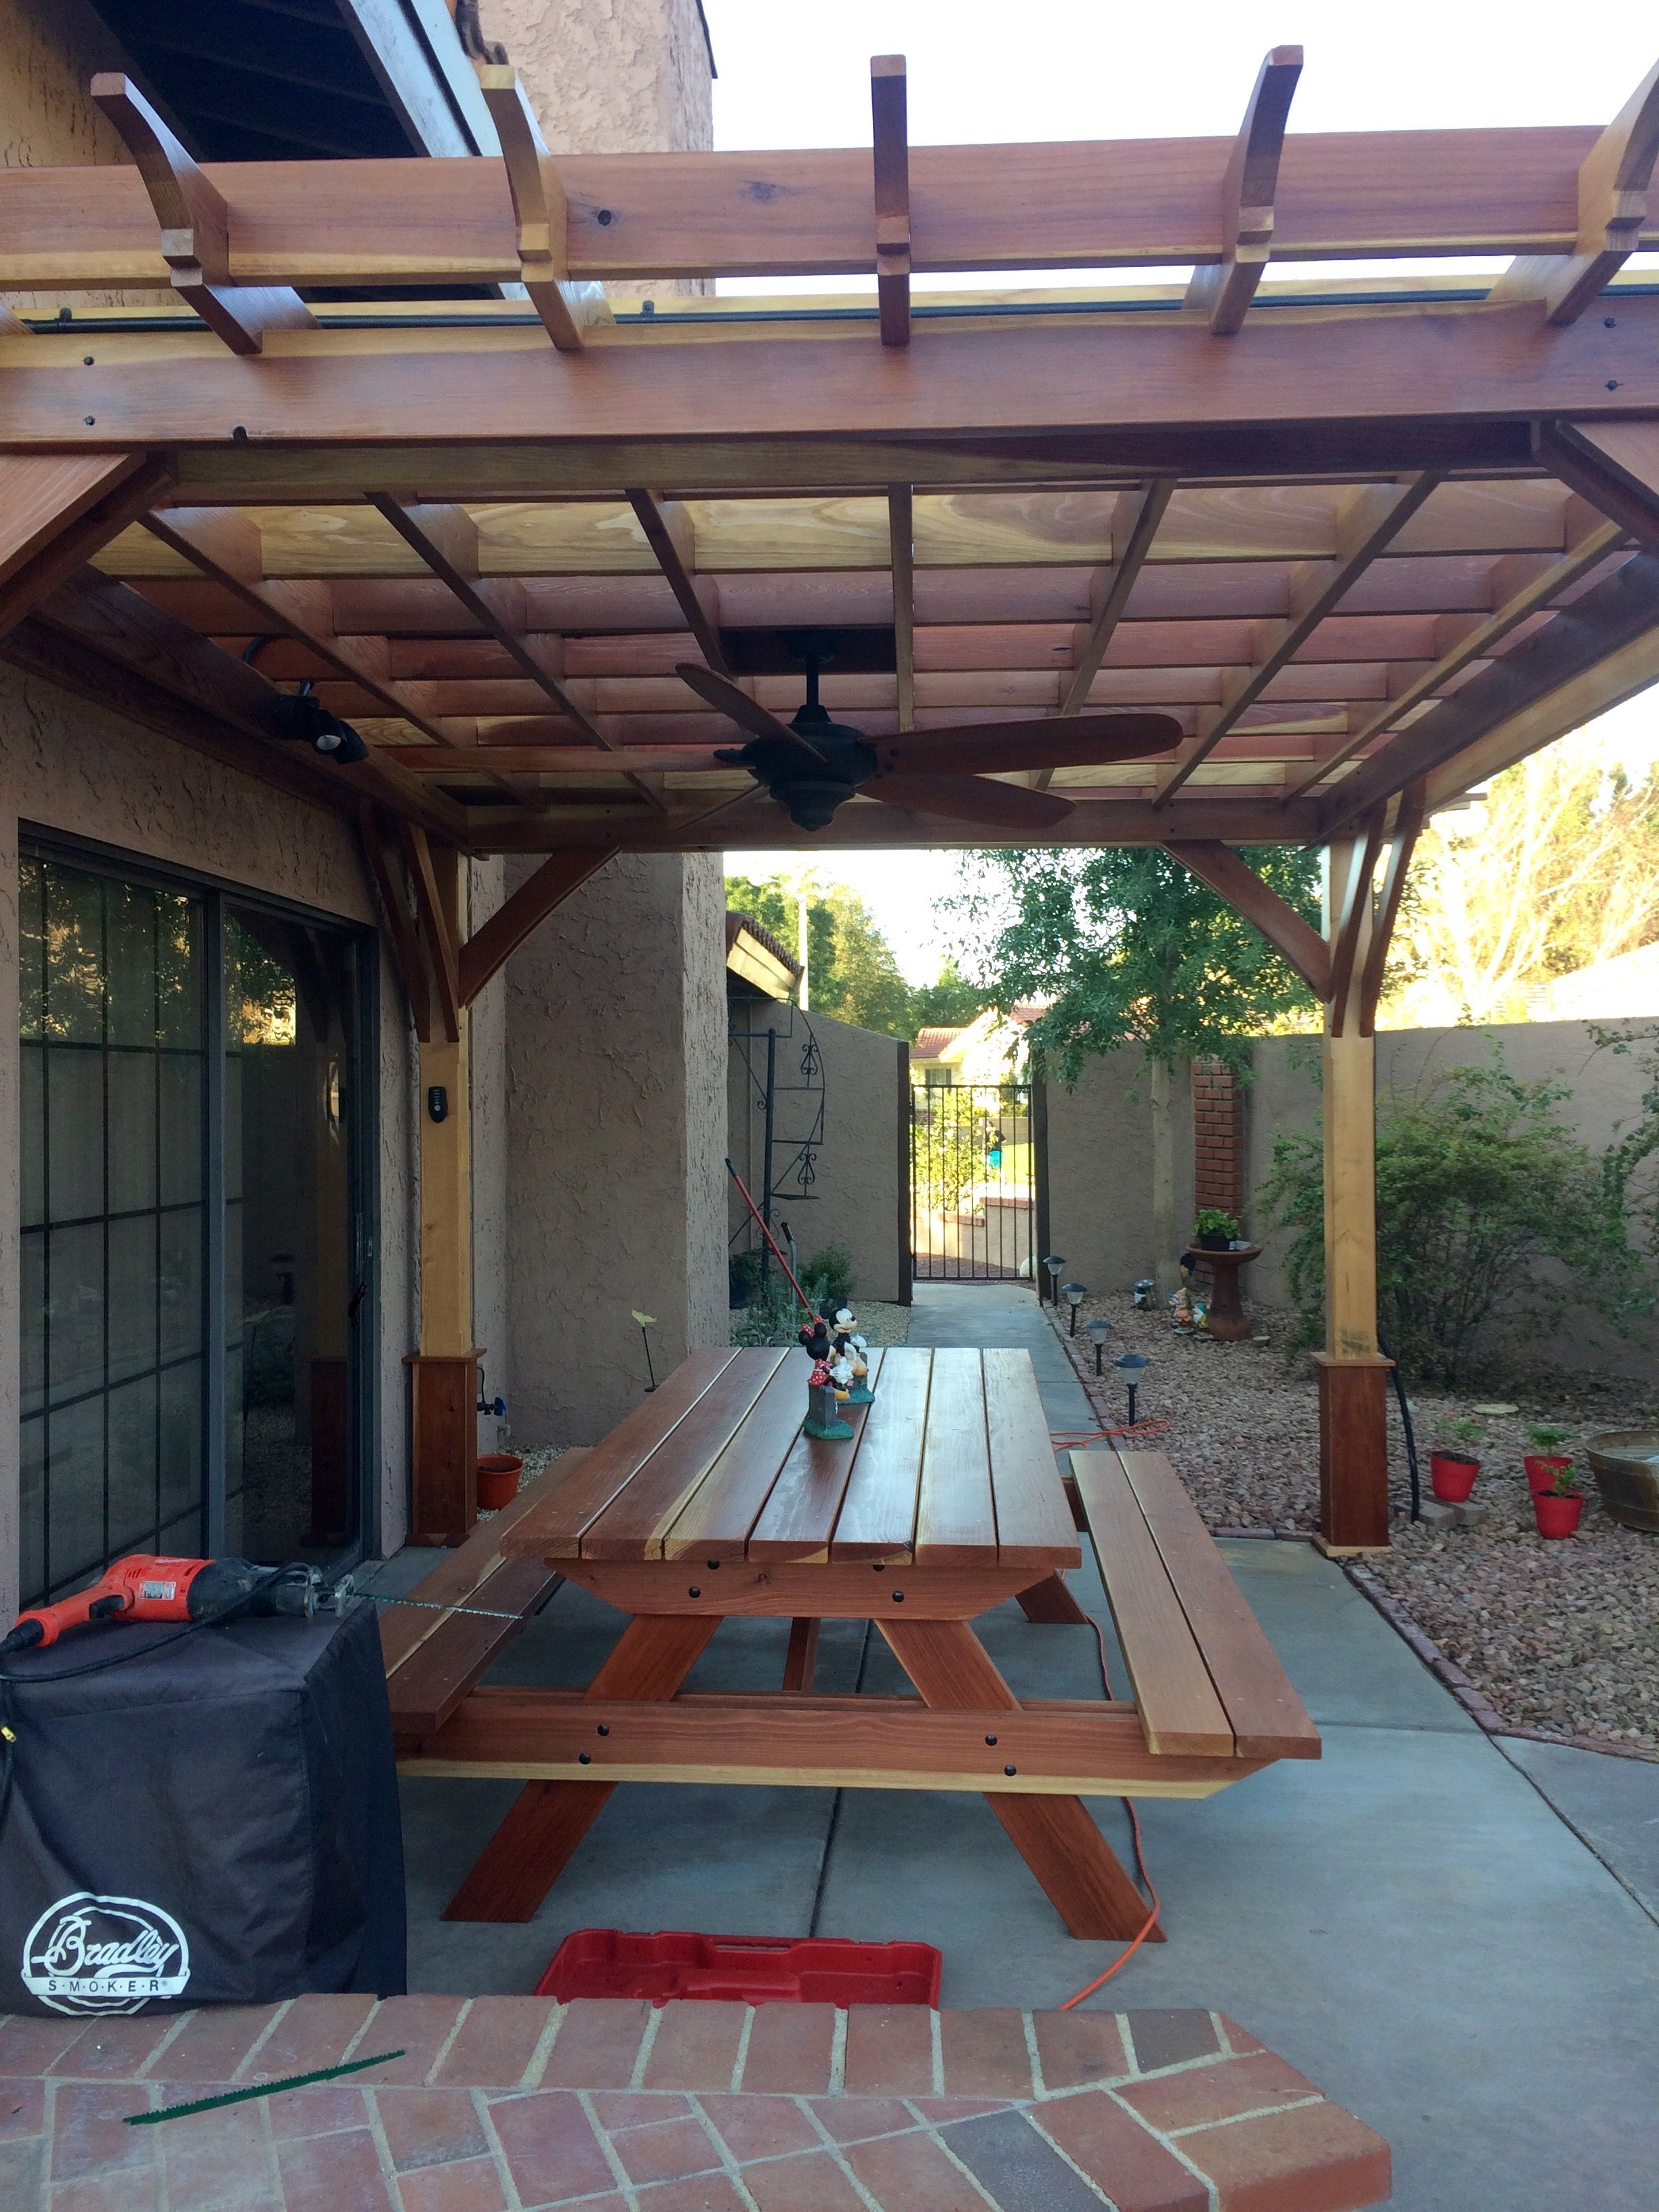 Redwood Patio Furniture Home Depot: Beautiful Handcrafted Redwood Post And Beam Patio Arbor